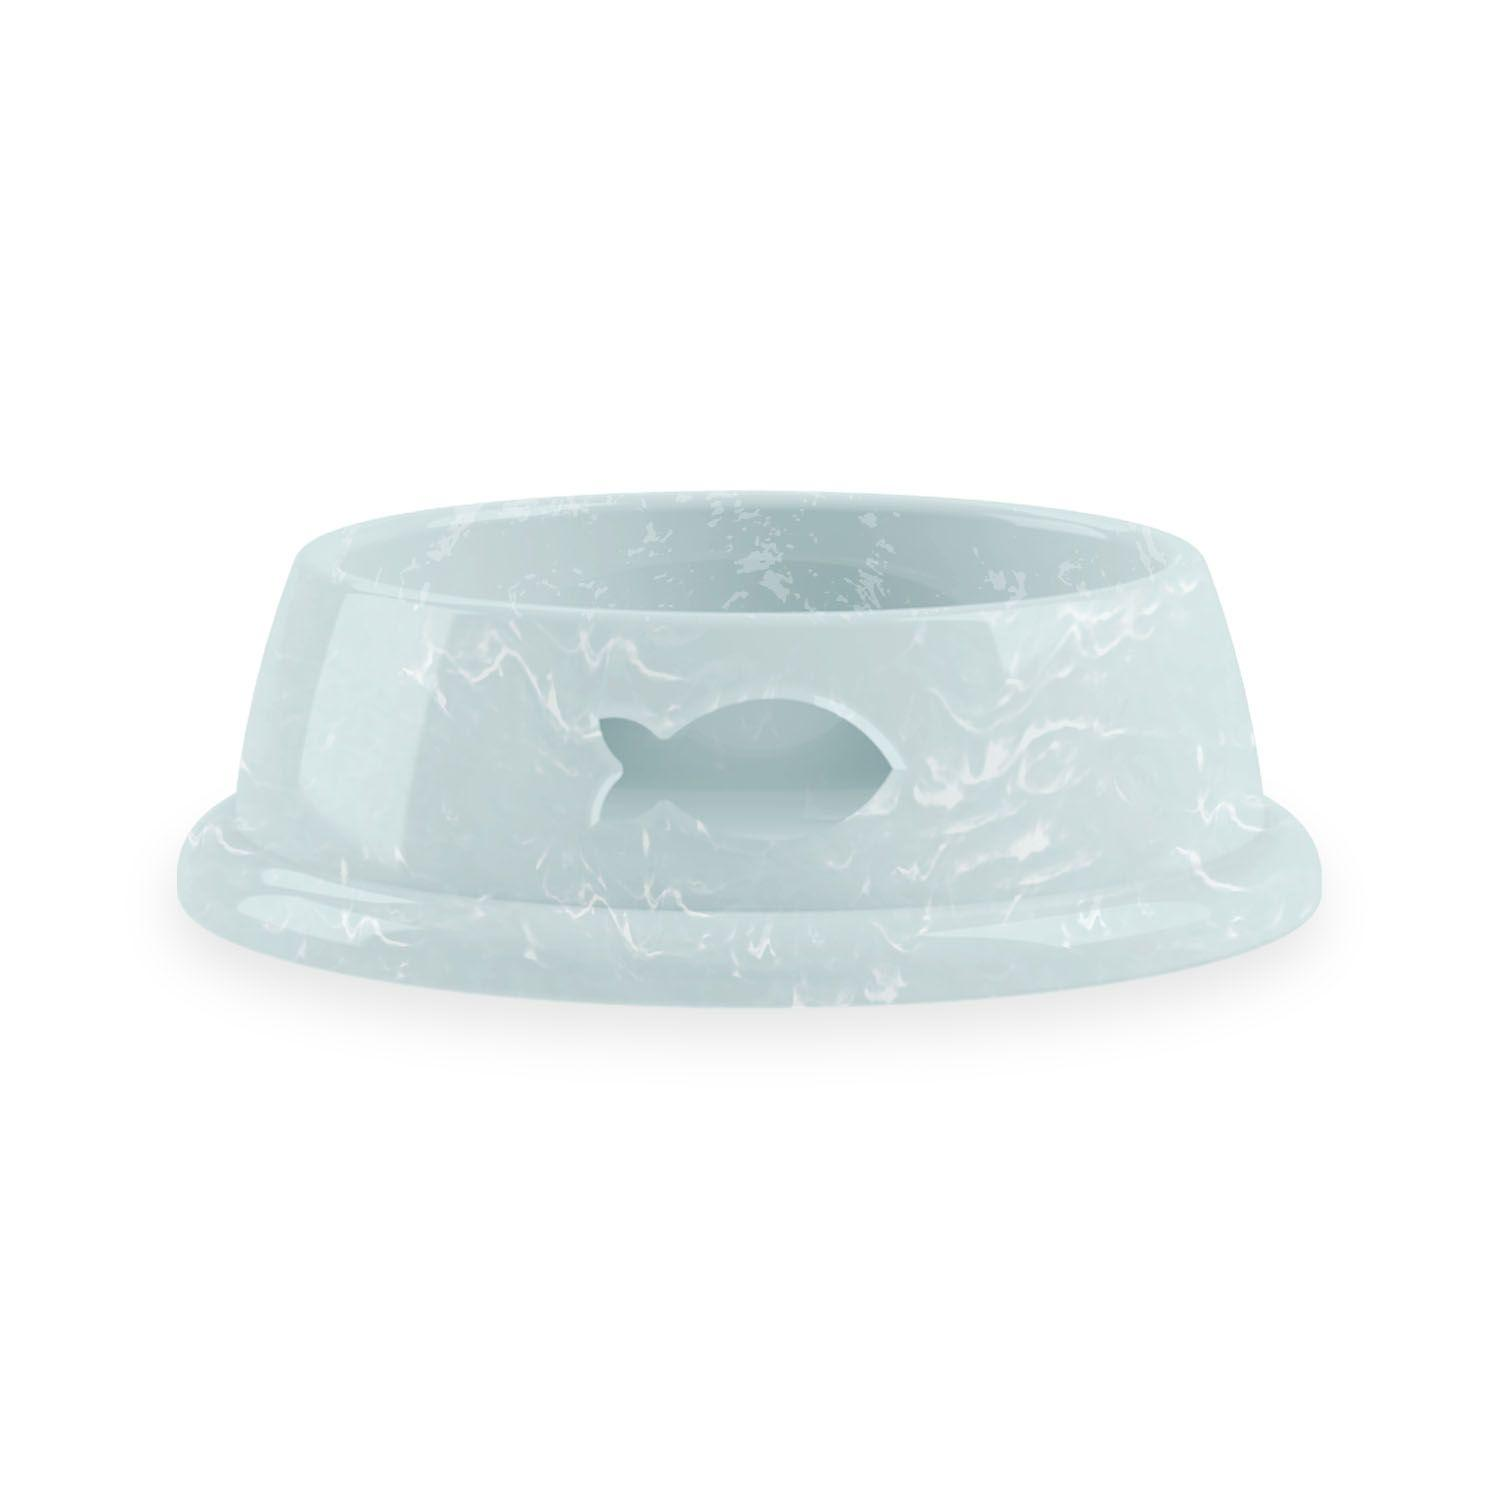 Whiskers Cat Bowl by Tarhong- Marbled Mint - Fish